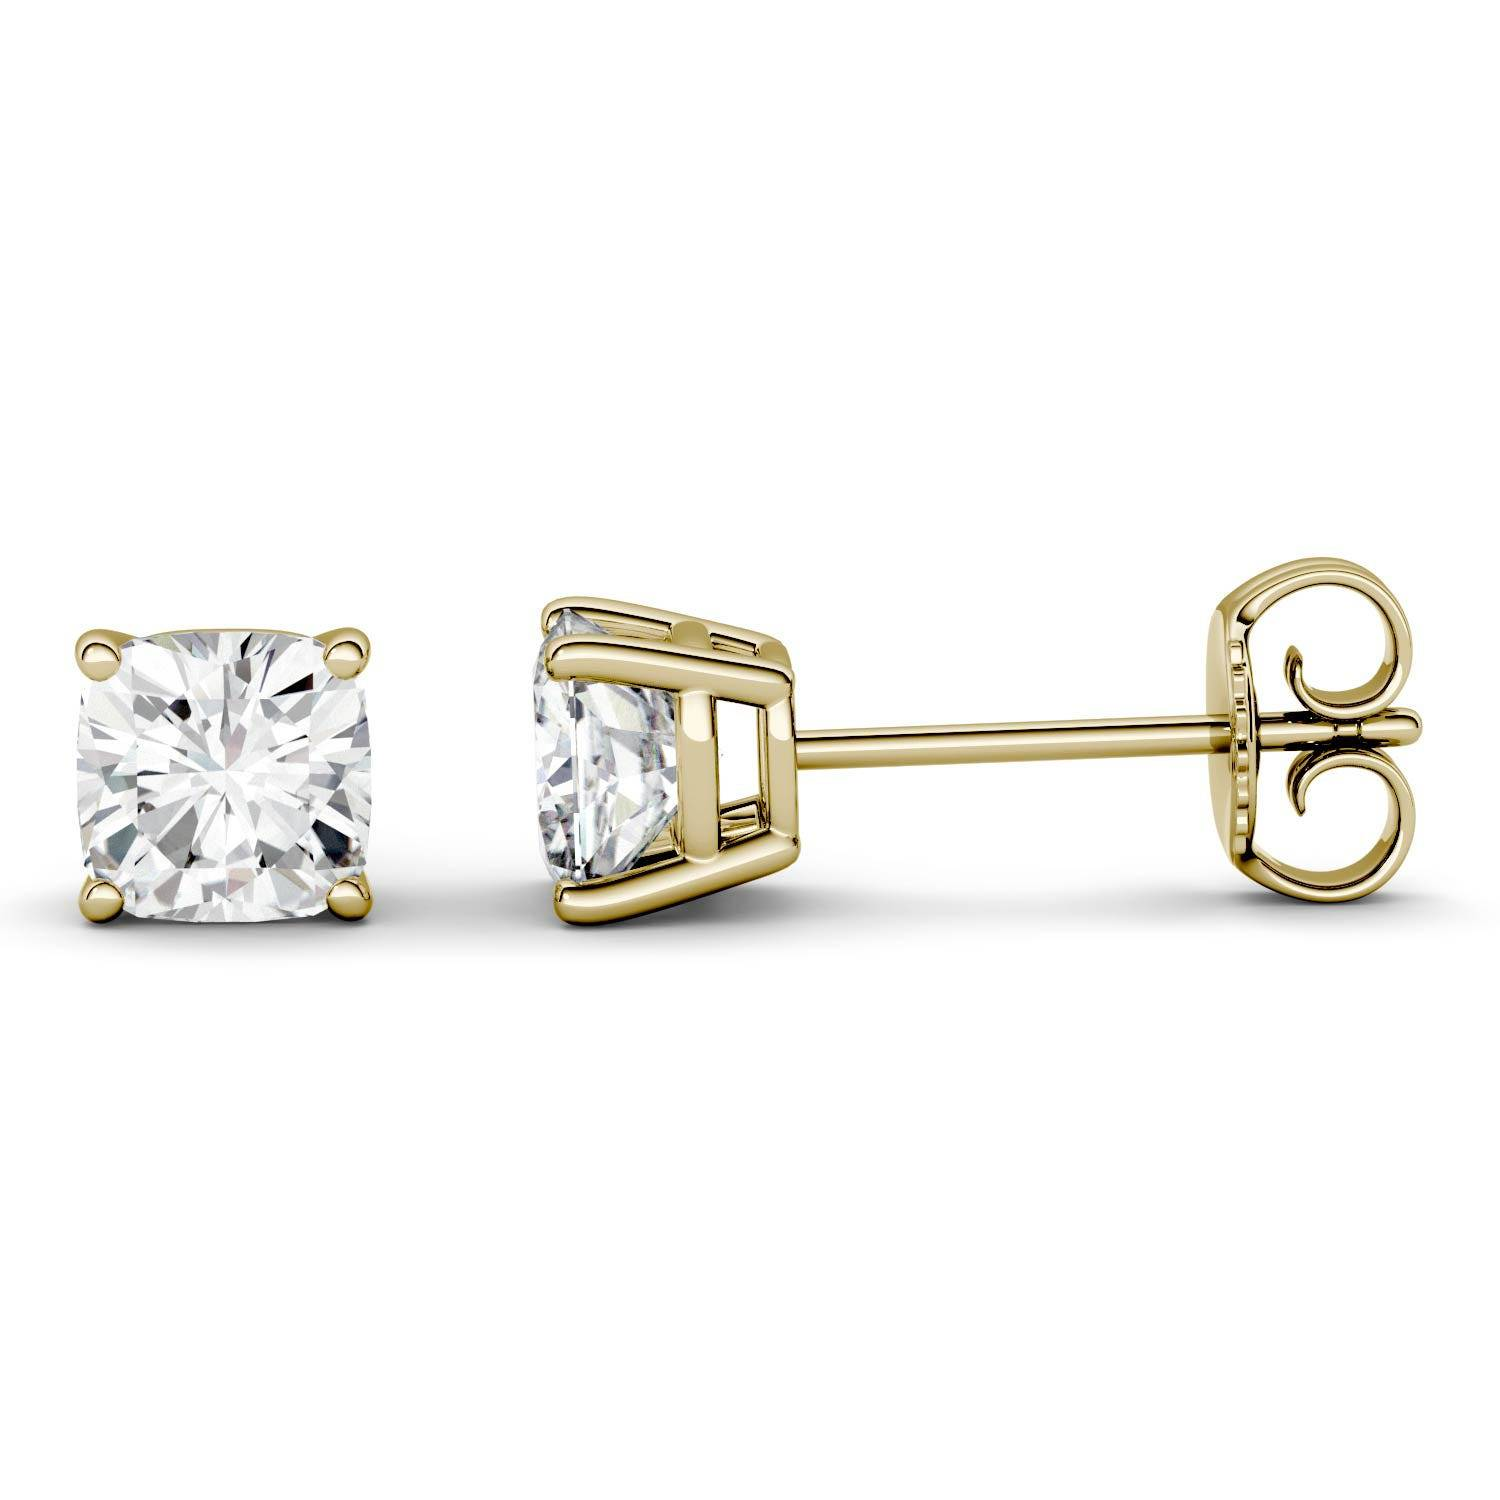 Charles & Colvard Four Prong Solitaire Stud Earring in 14K Yellow Gold, 1.00CTW Cushion Forever One - Colorless Moissanite Charles & Colvard  - Yellow Gold - Size: One Size